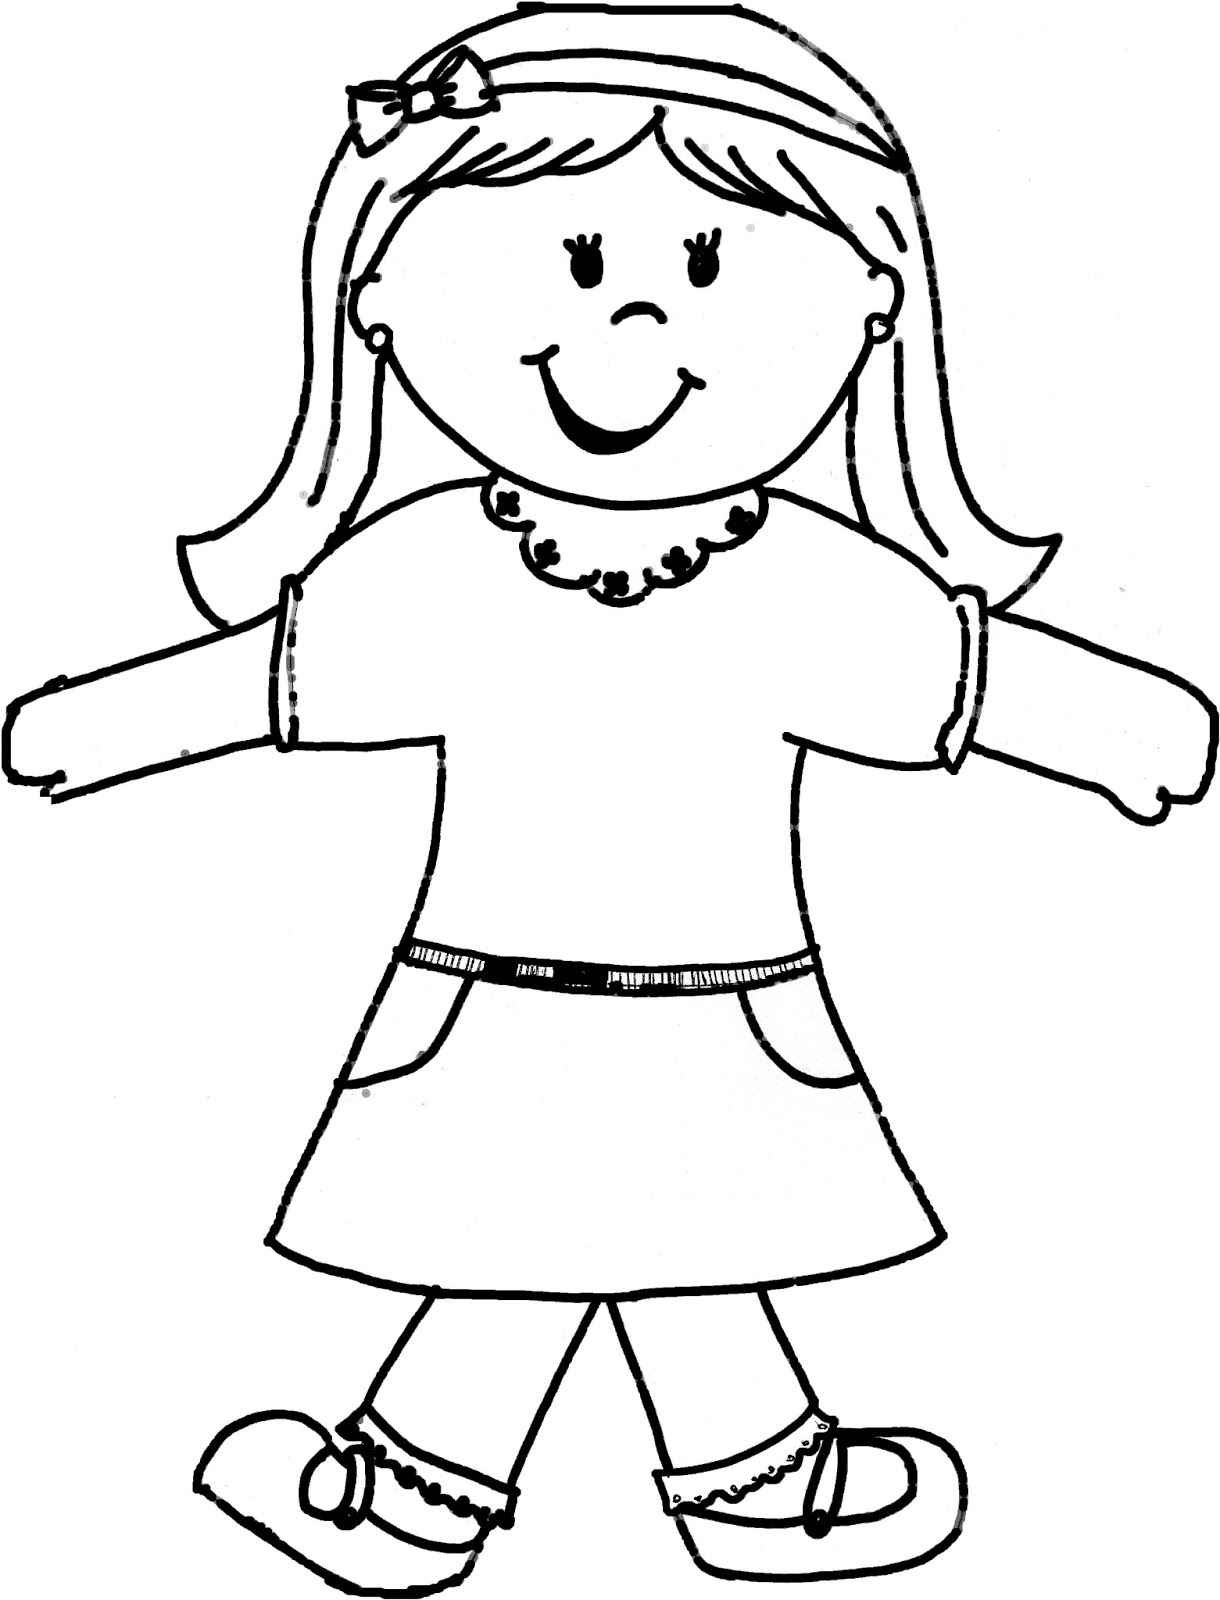 Free Coloring Pages Of Boy And Girl Template Outline Of A Boy And Coloring Pages